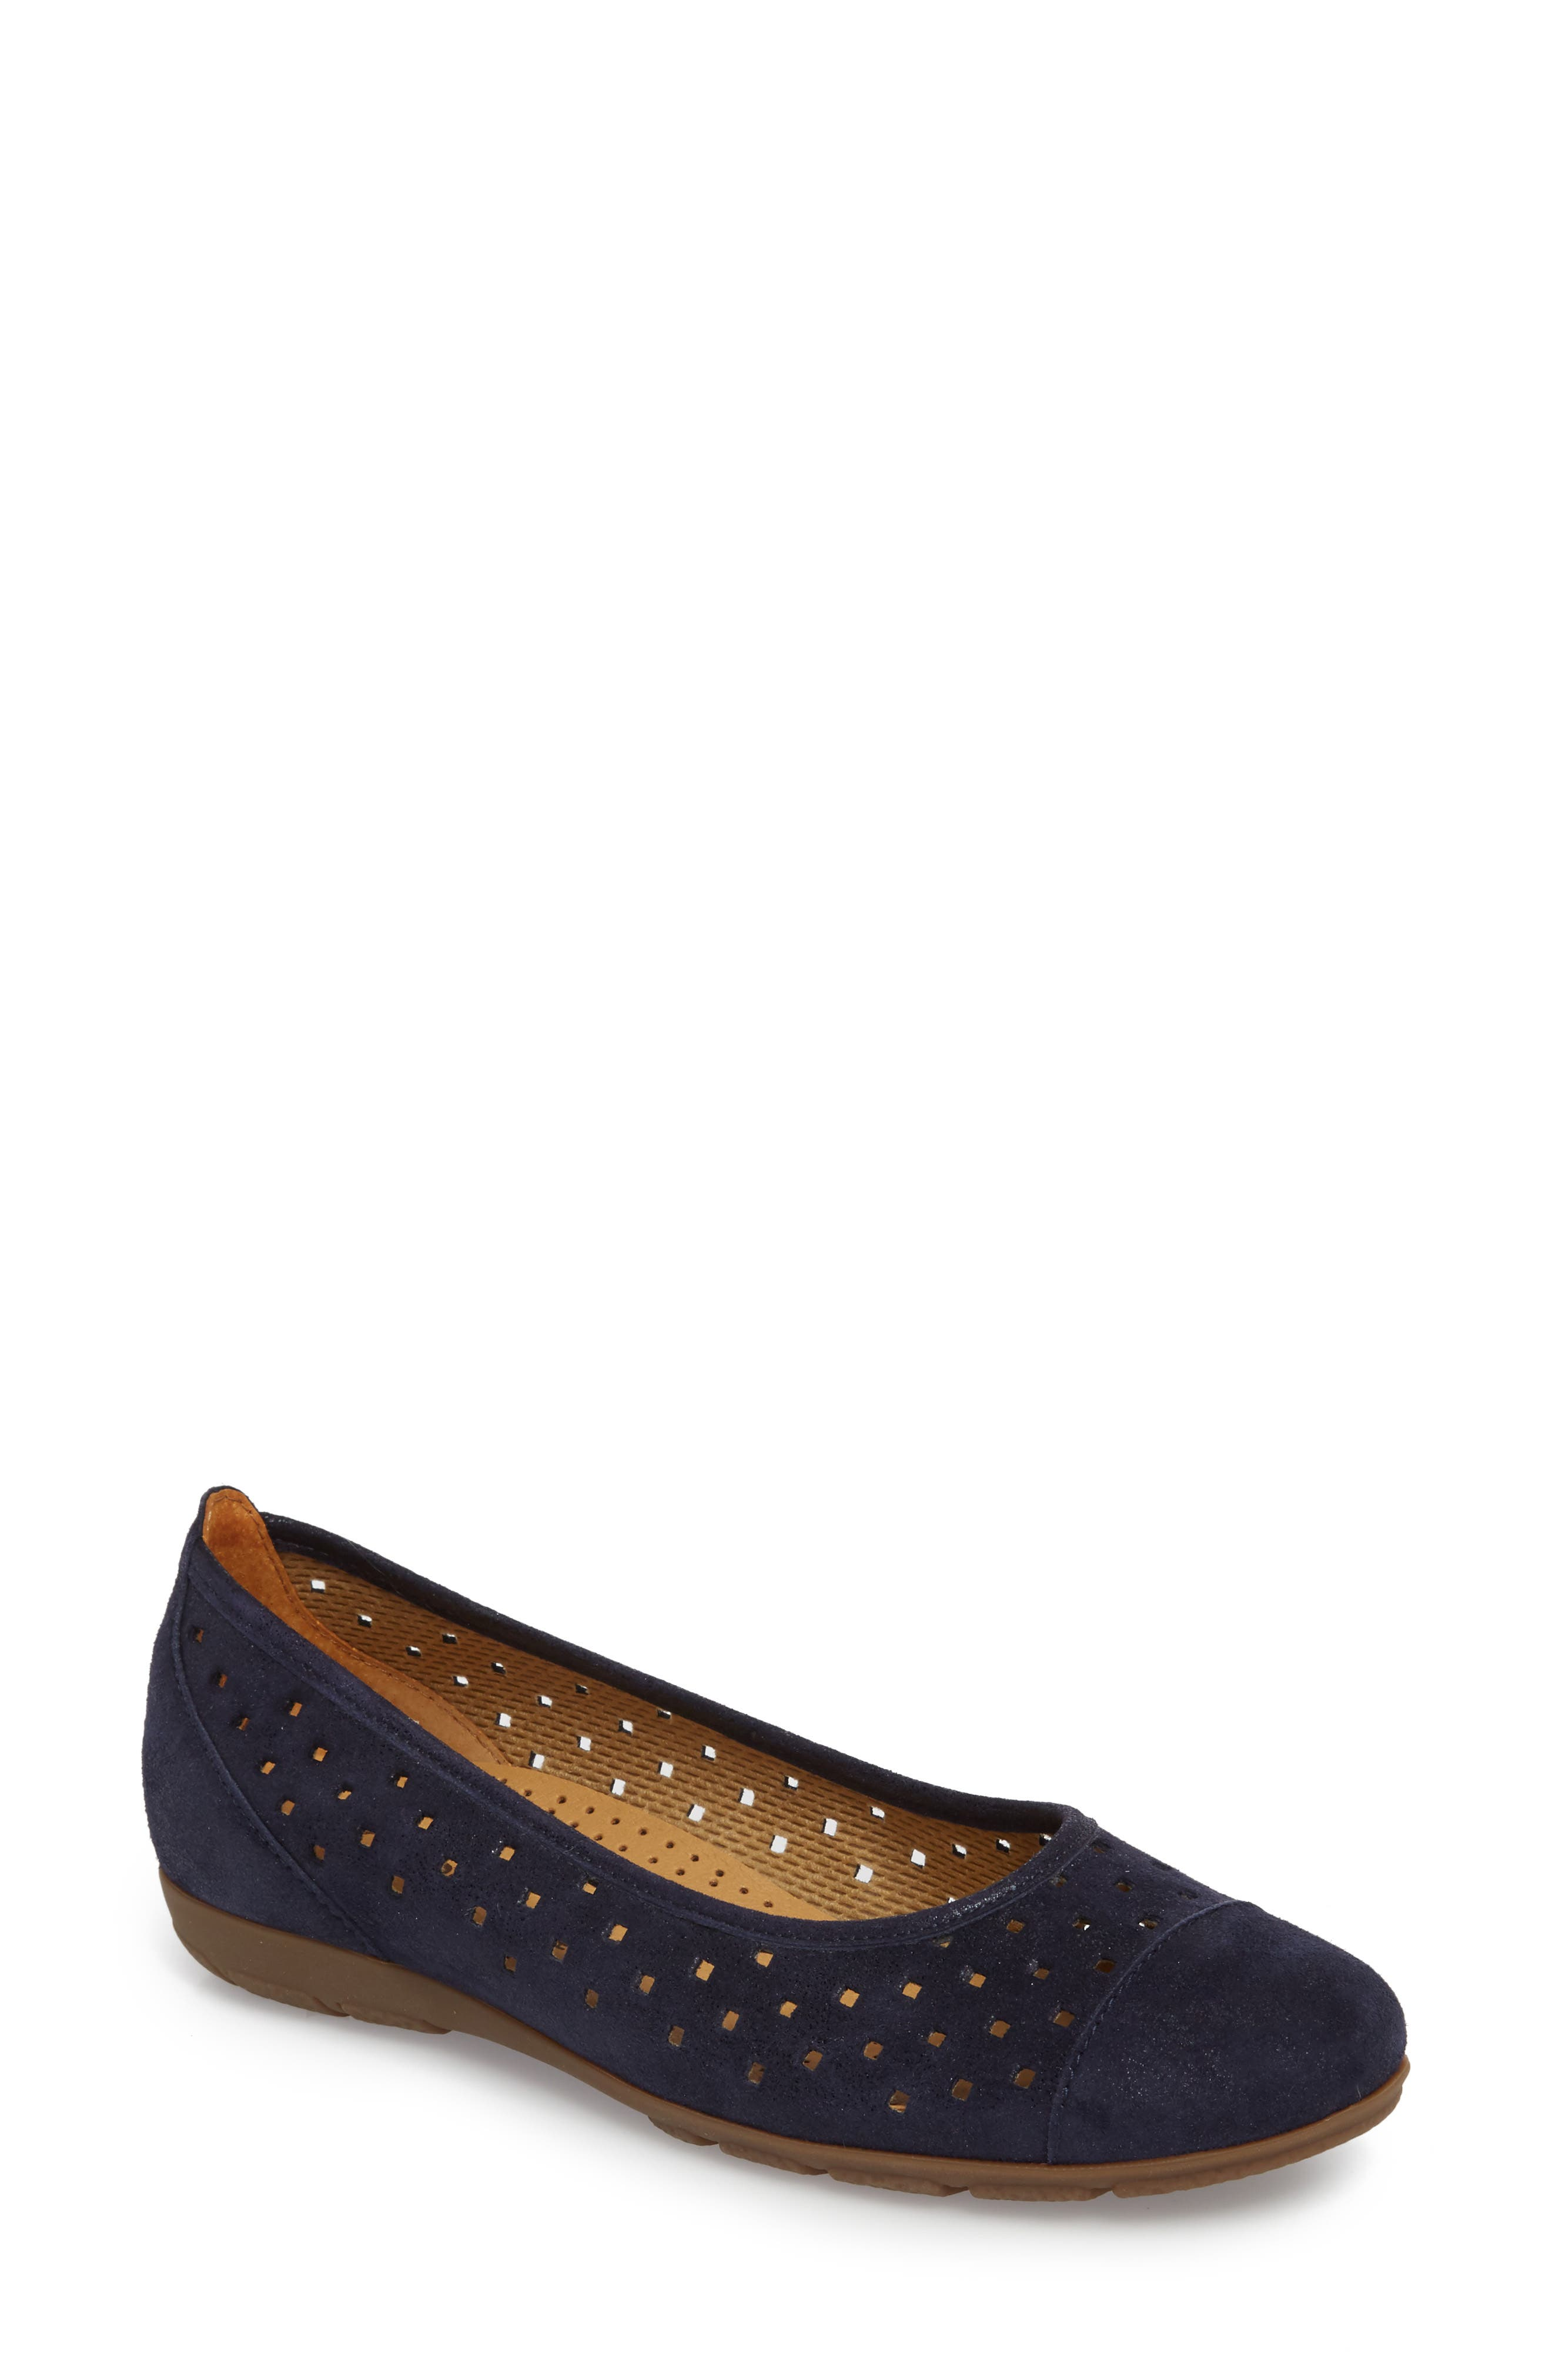 Gabor Perforated Ballet Flat- Blue